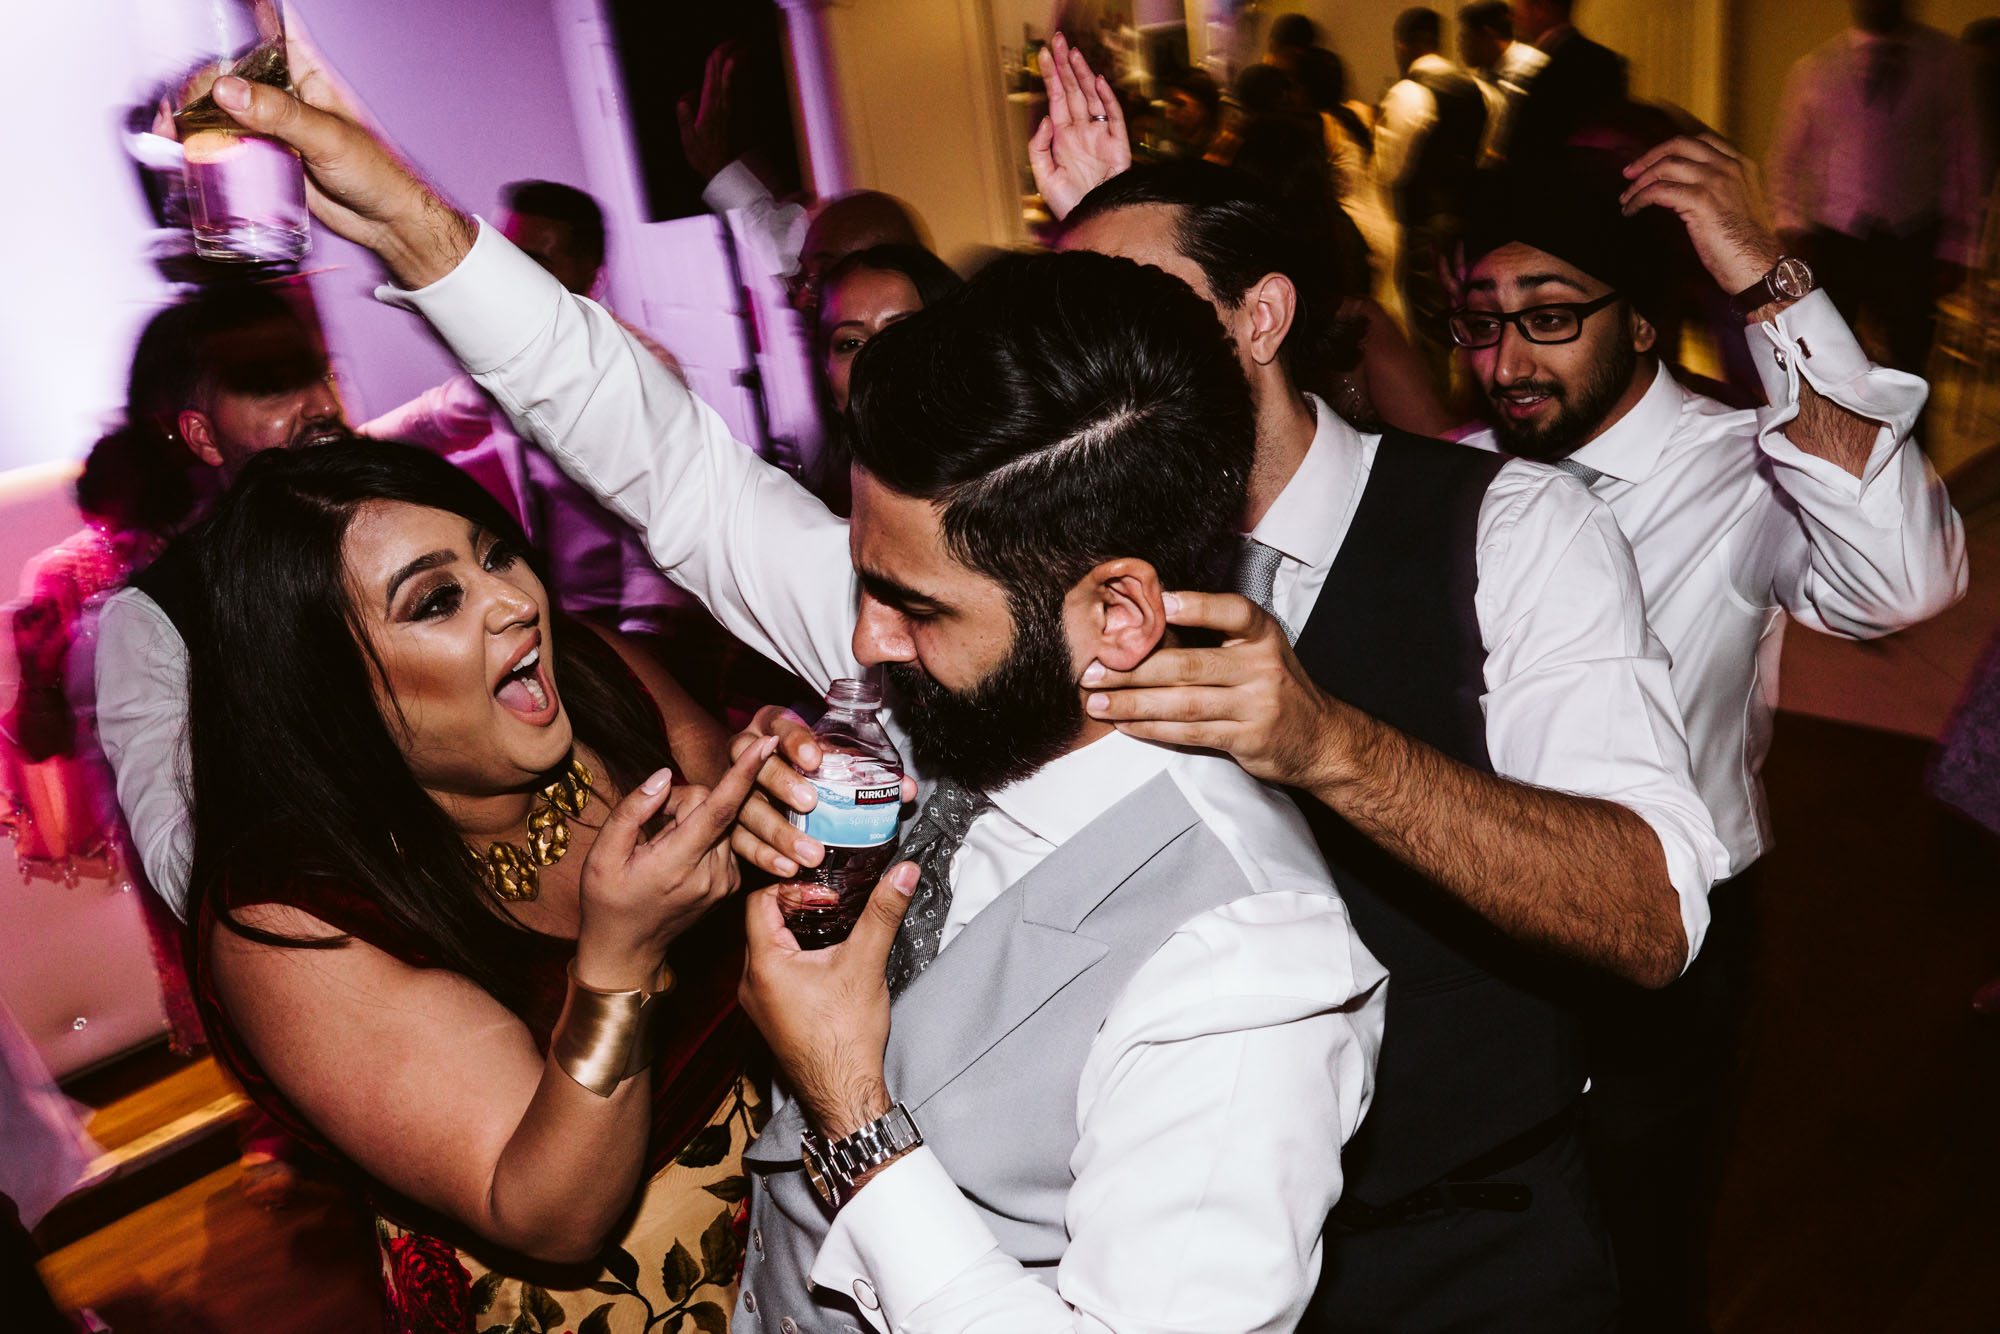 Sikh Wedding Photography (735).jpg